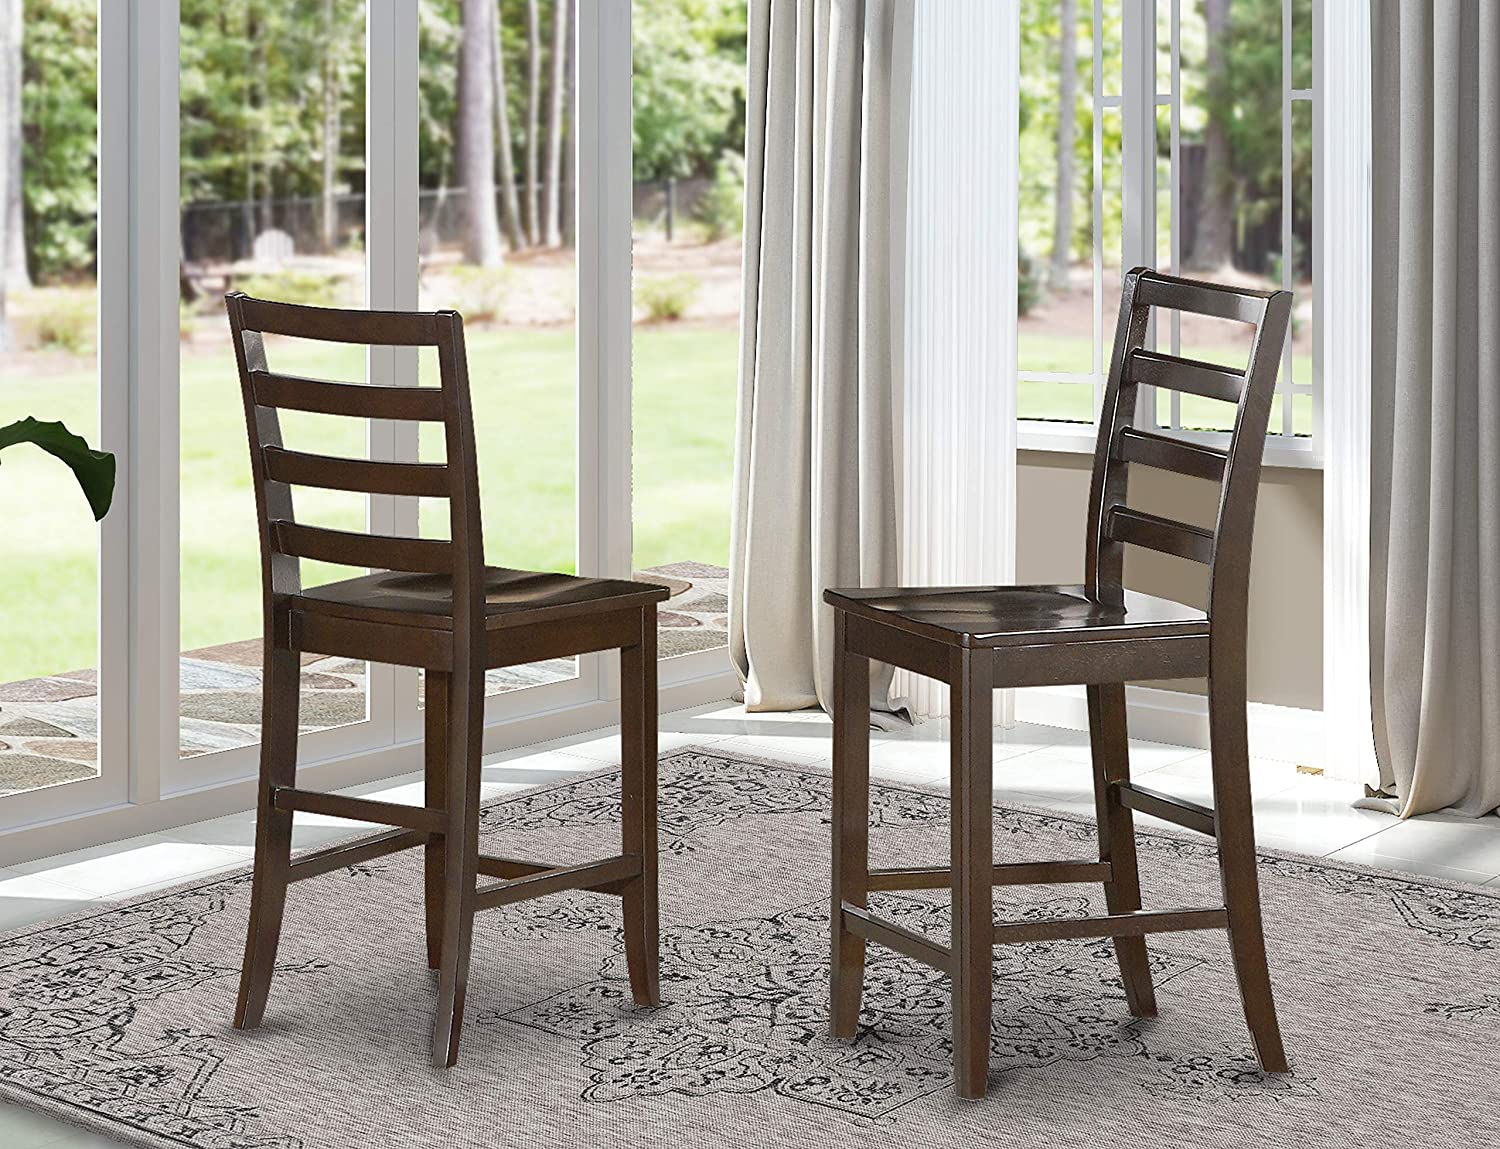 East West Furniture Wood Seat Stool Set with Ladder Back, Set of 2, Cappuccino Finish